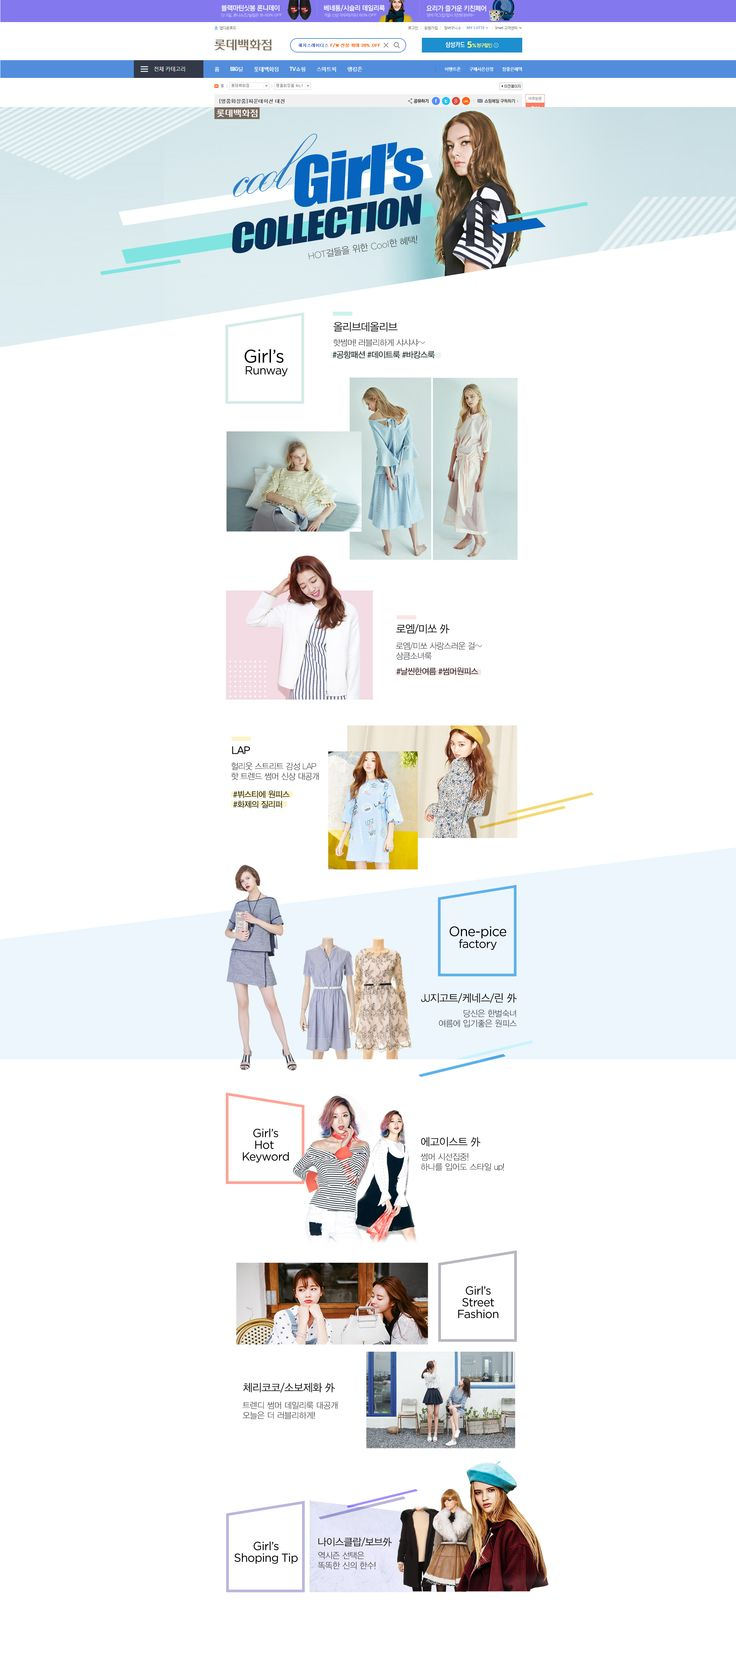 [롯데백화점] Girl's Collection 2차 open Designed by 유예림